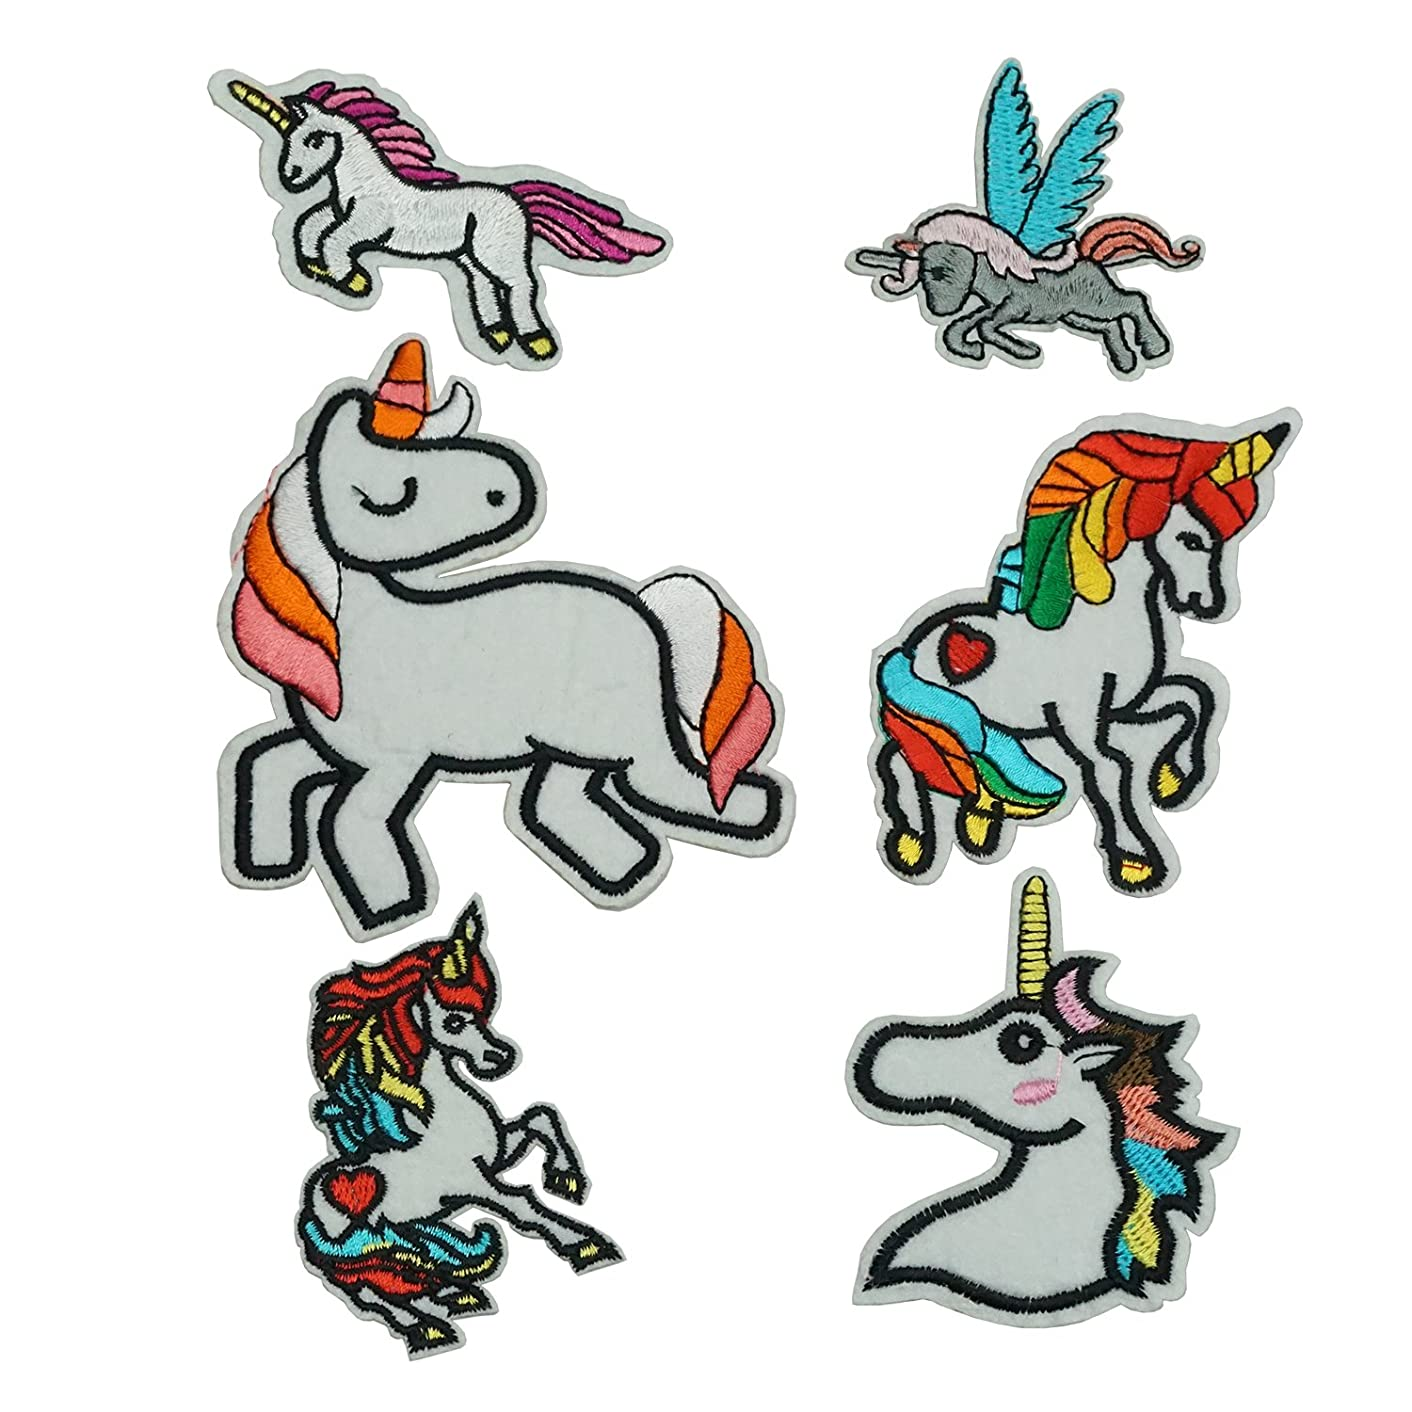 Set of 6 Cute Colorful Unicorn Iron on Patches Set Cloth Badges Embroidered Applique Sewing Patches Clothes Stickers